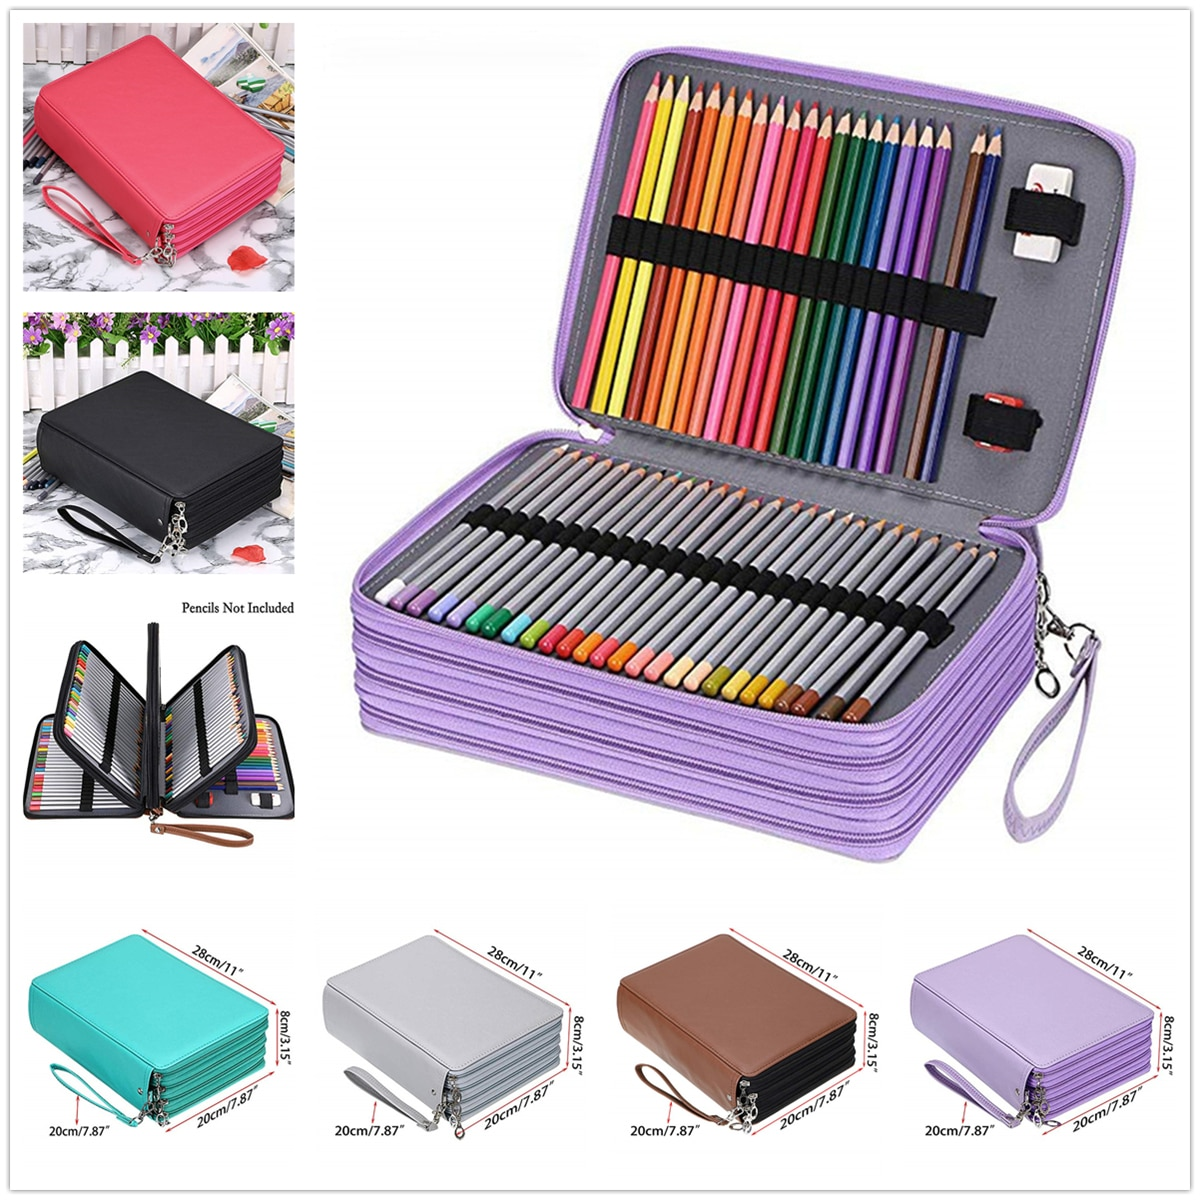 200 Holes PU Leather School Pencil Case Large Capacity Colored Pencil Bag Box Multi-functional Pencilcase For Art Supplies Gift